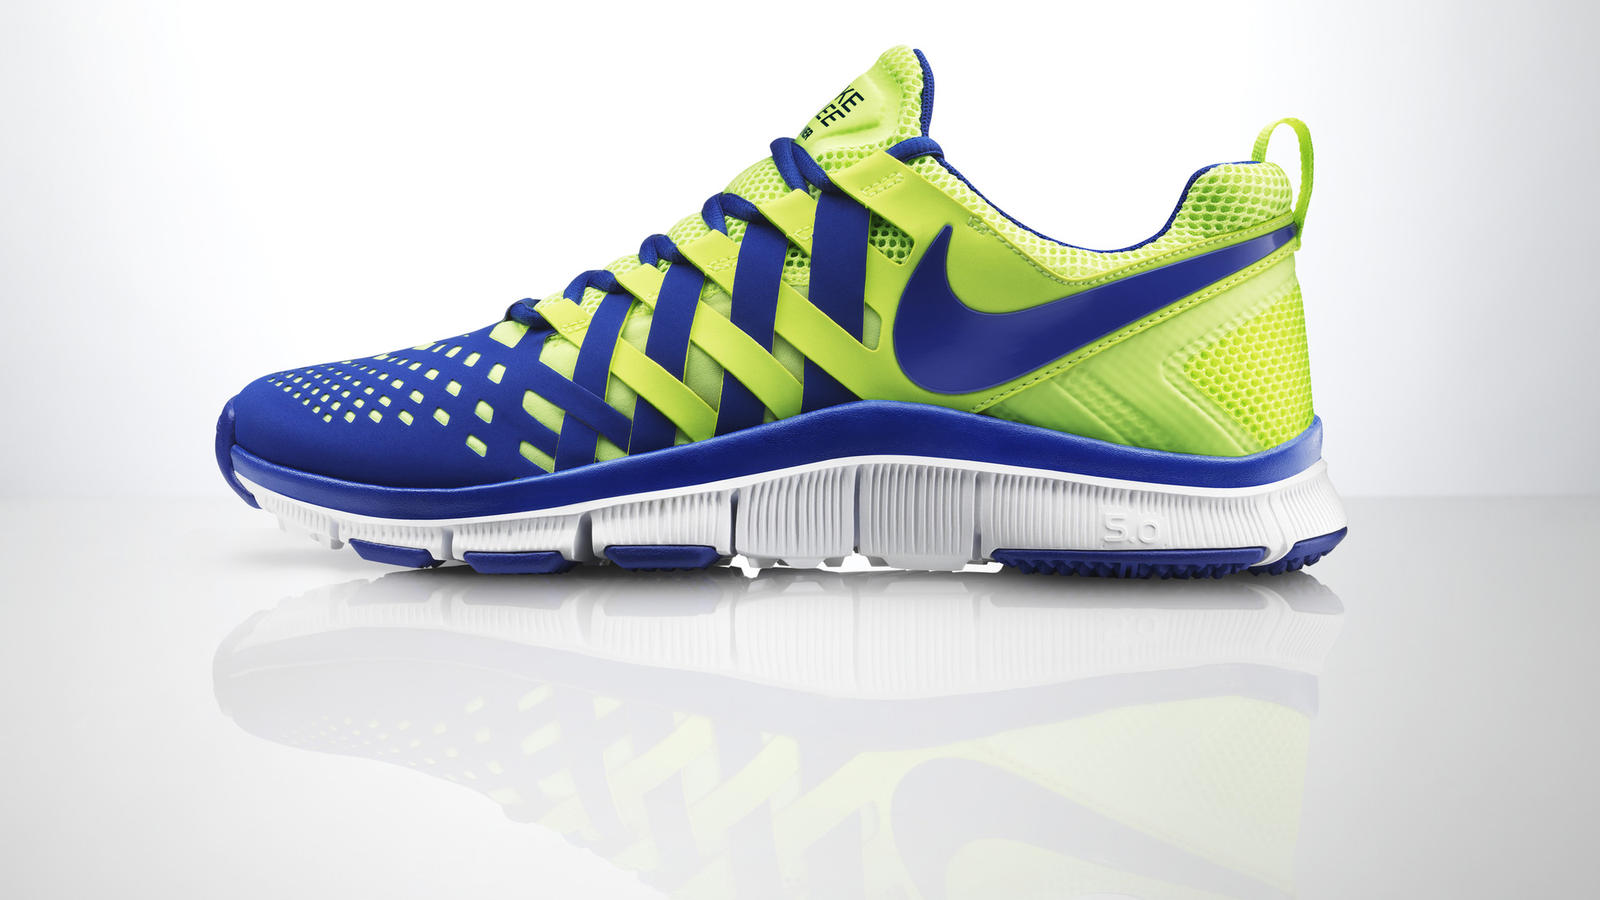 Introducing the Nike Free Trainer 5.0 - Nike News